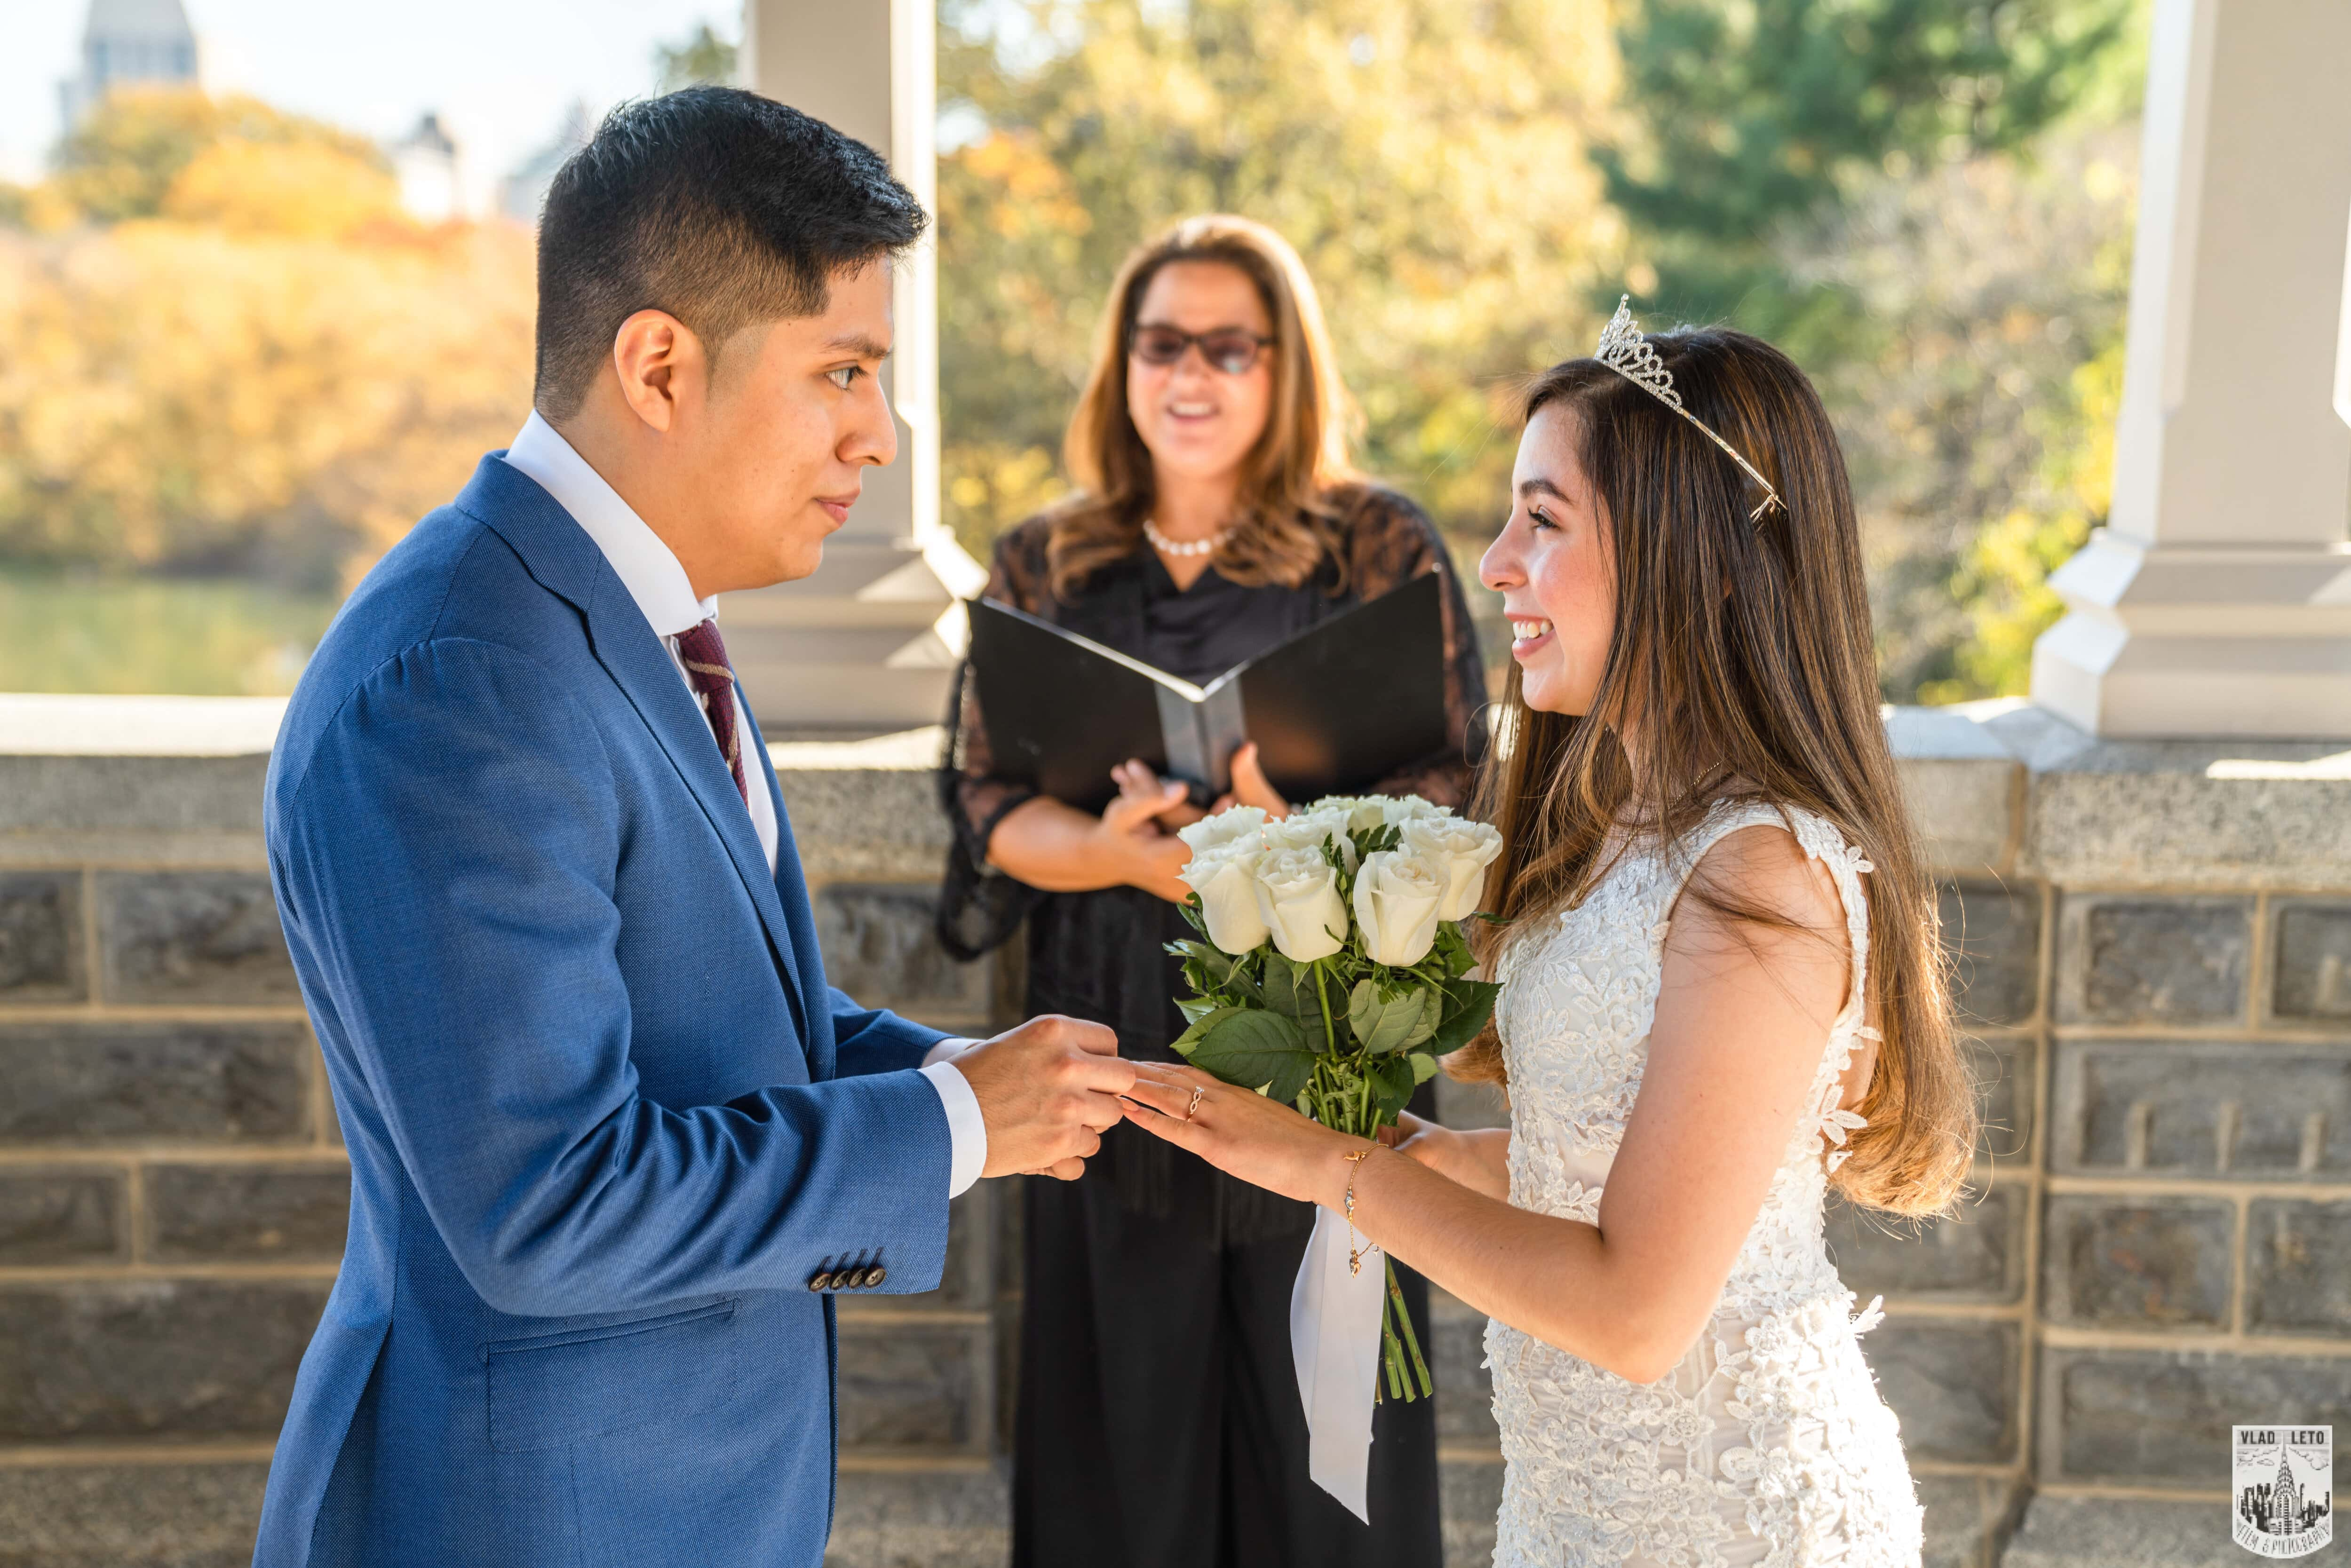 Photo 9 Francisco and Maria wedding ceremony at the Belvedere Castle